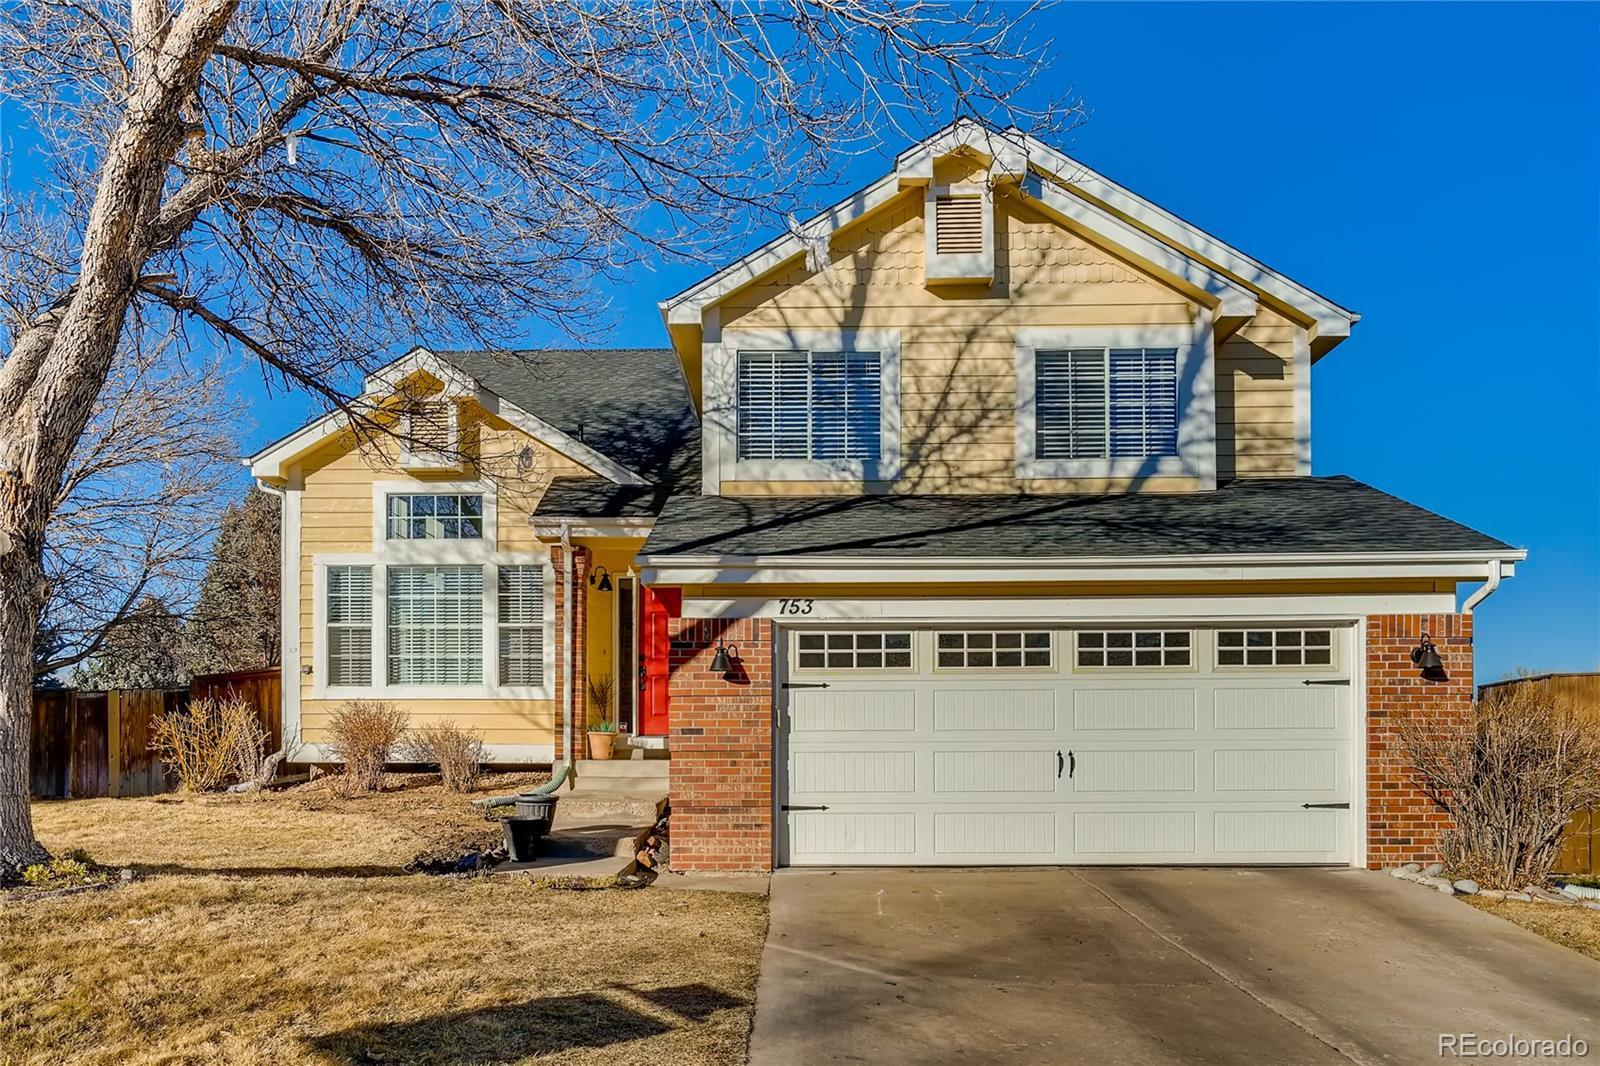 753 Wedgewood Court, Highlands Ranch, CO 80126 - #: 5106308